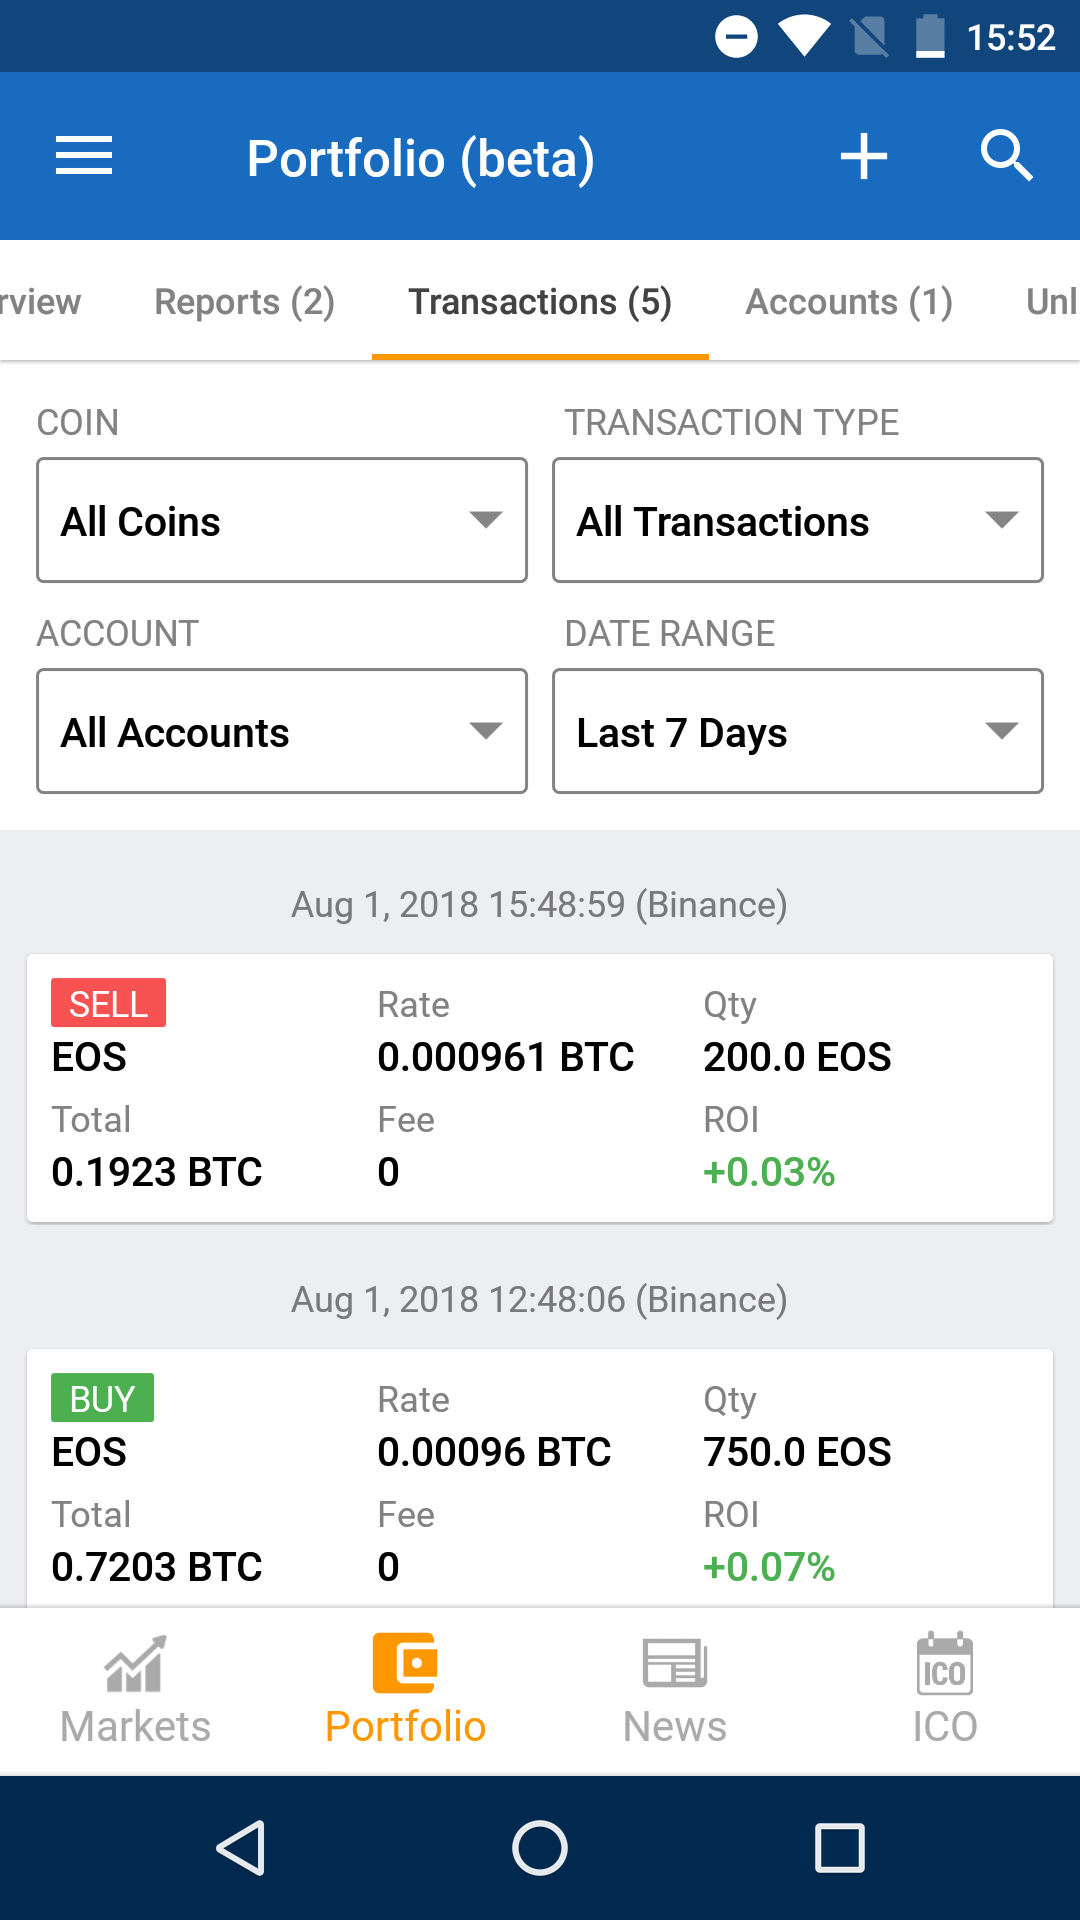 Add Every Deposit Withdrawal Purchase And Account Transfer You Make Track The Fees Involved If Any Even Notes To Transaction